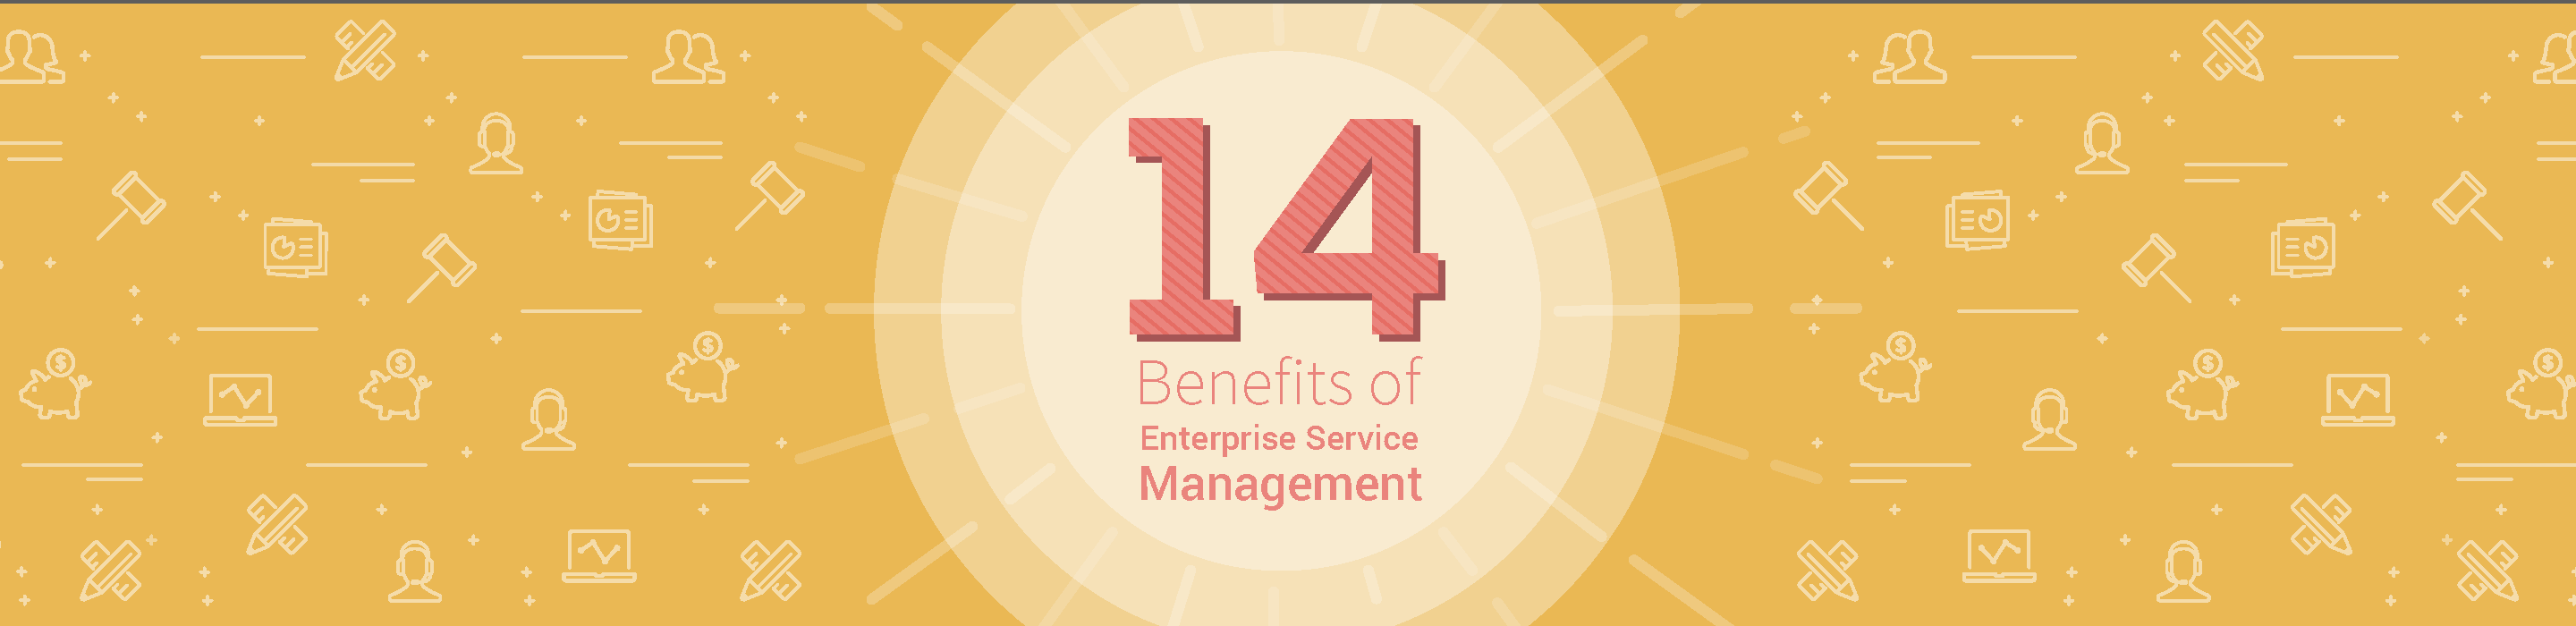 14 benefits of enterprise service management